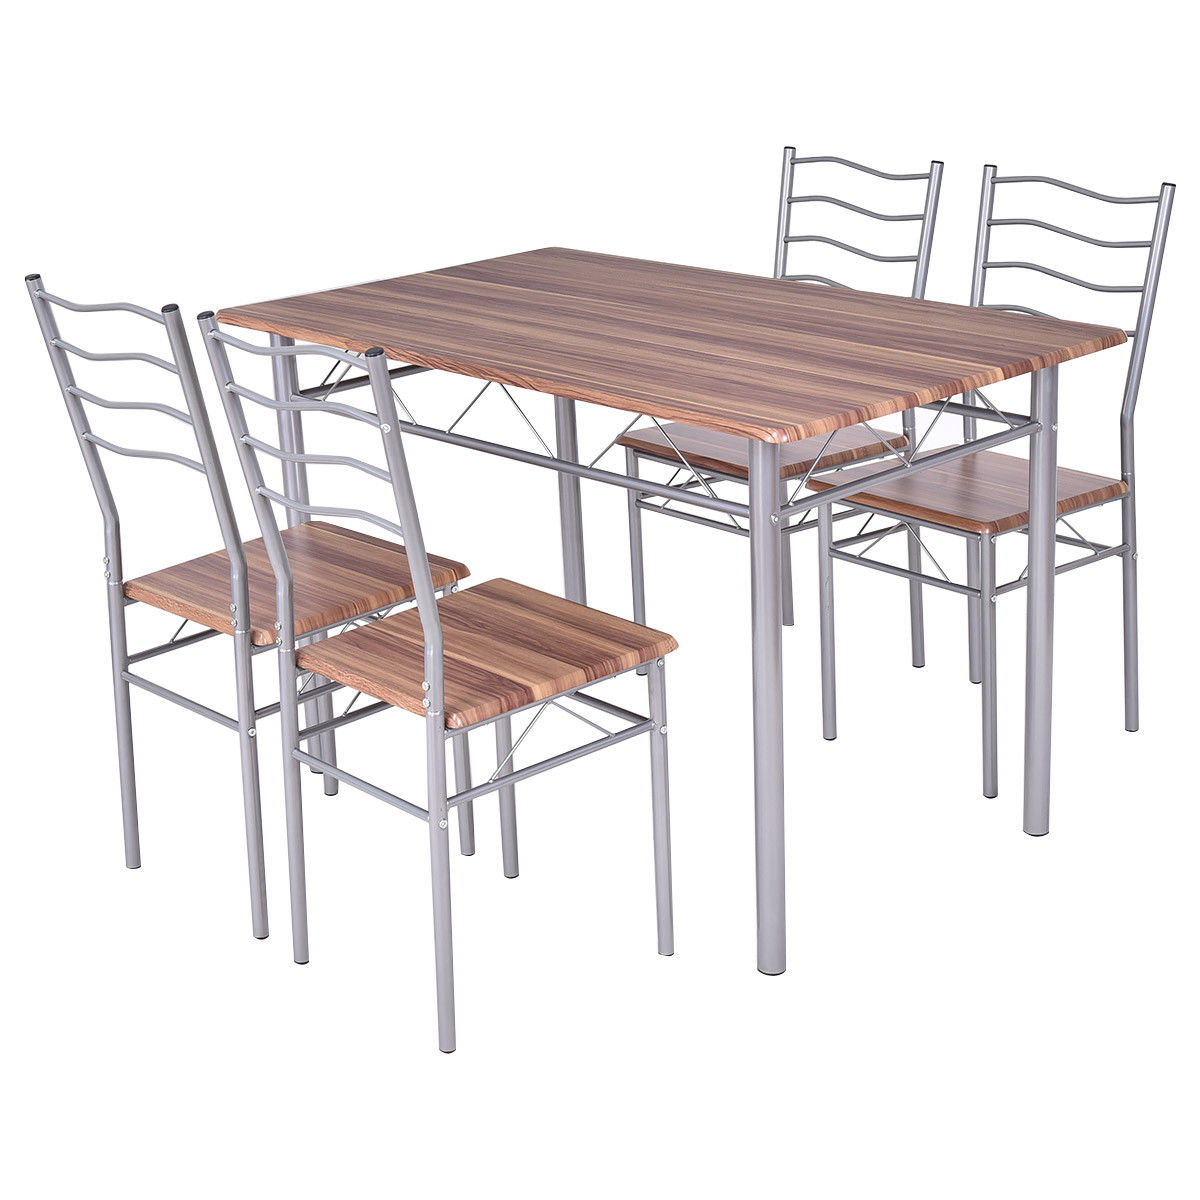 steel chair dining table design challenge costway 5 piece set wood metal and 4 chairs kitchen modern furniture walmart com